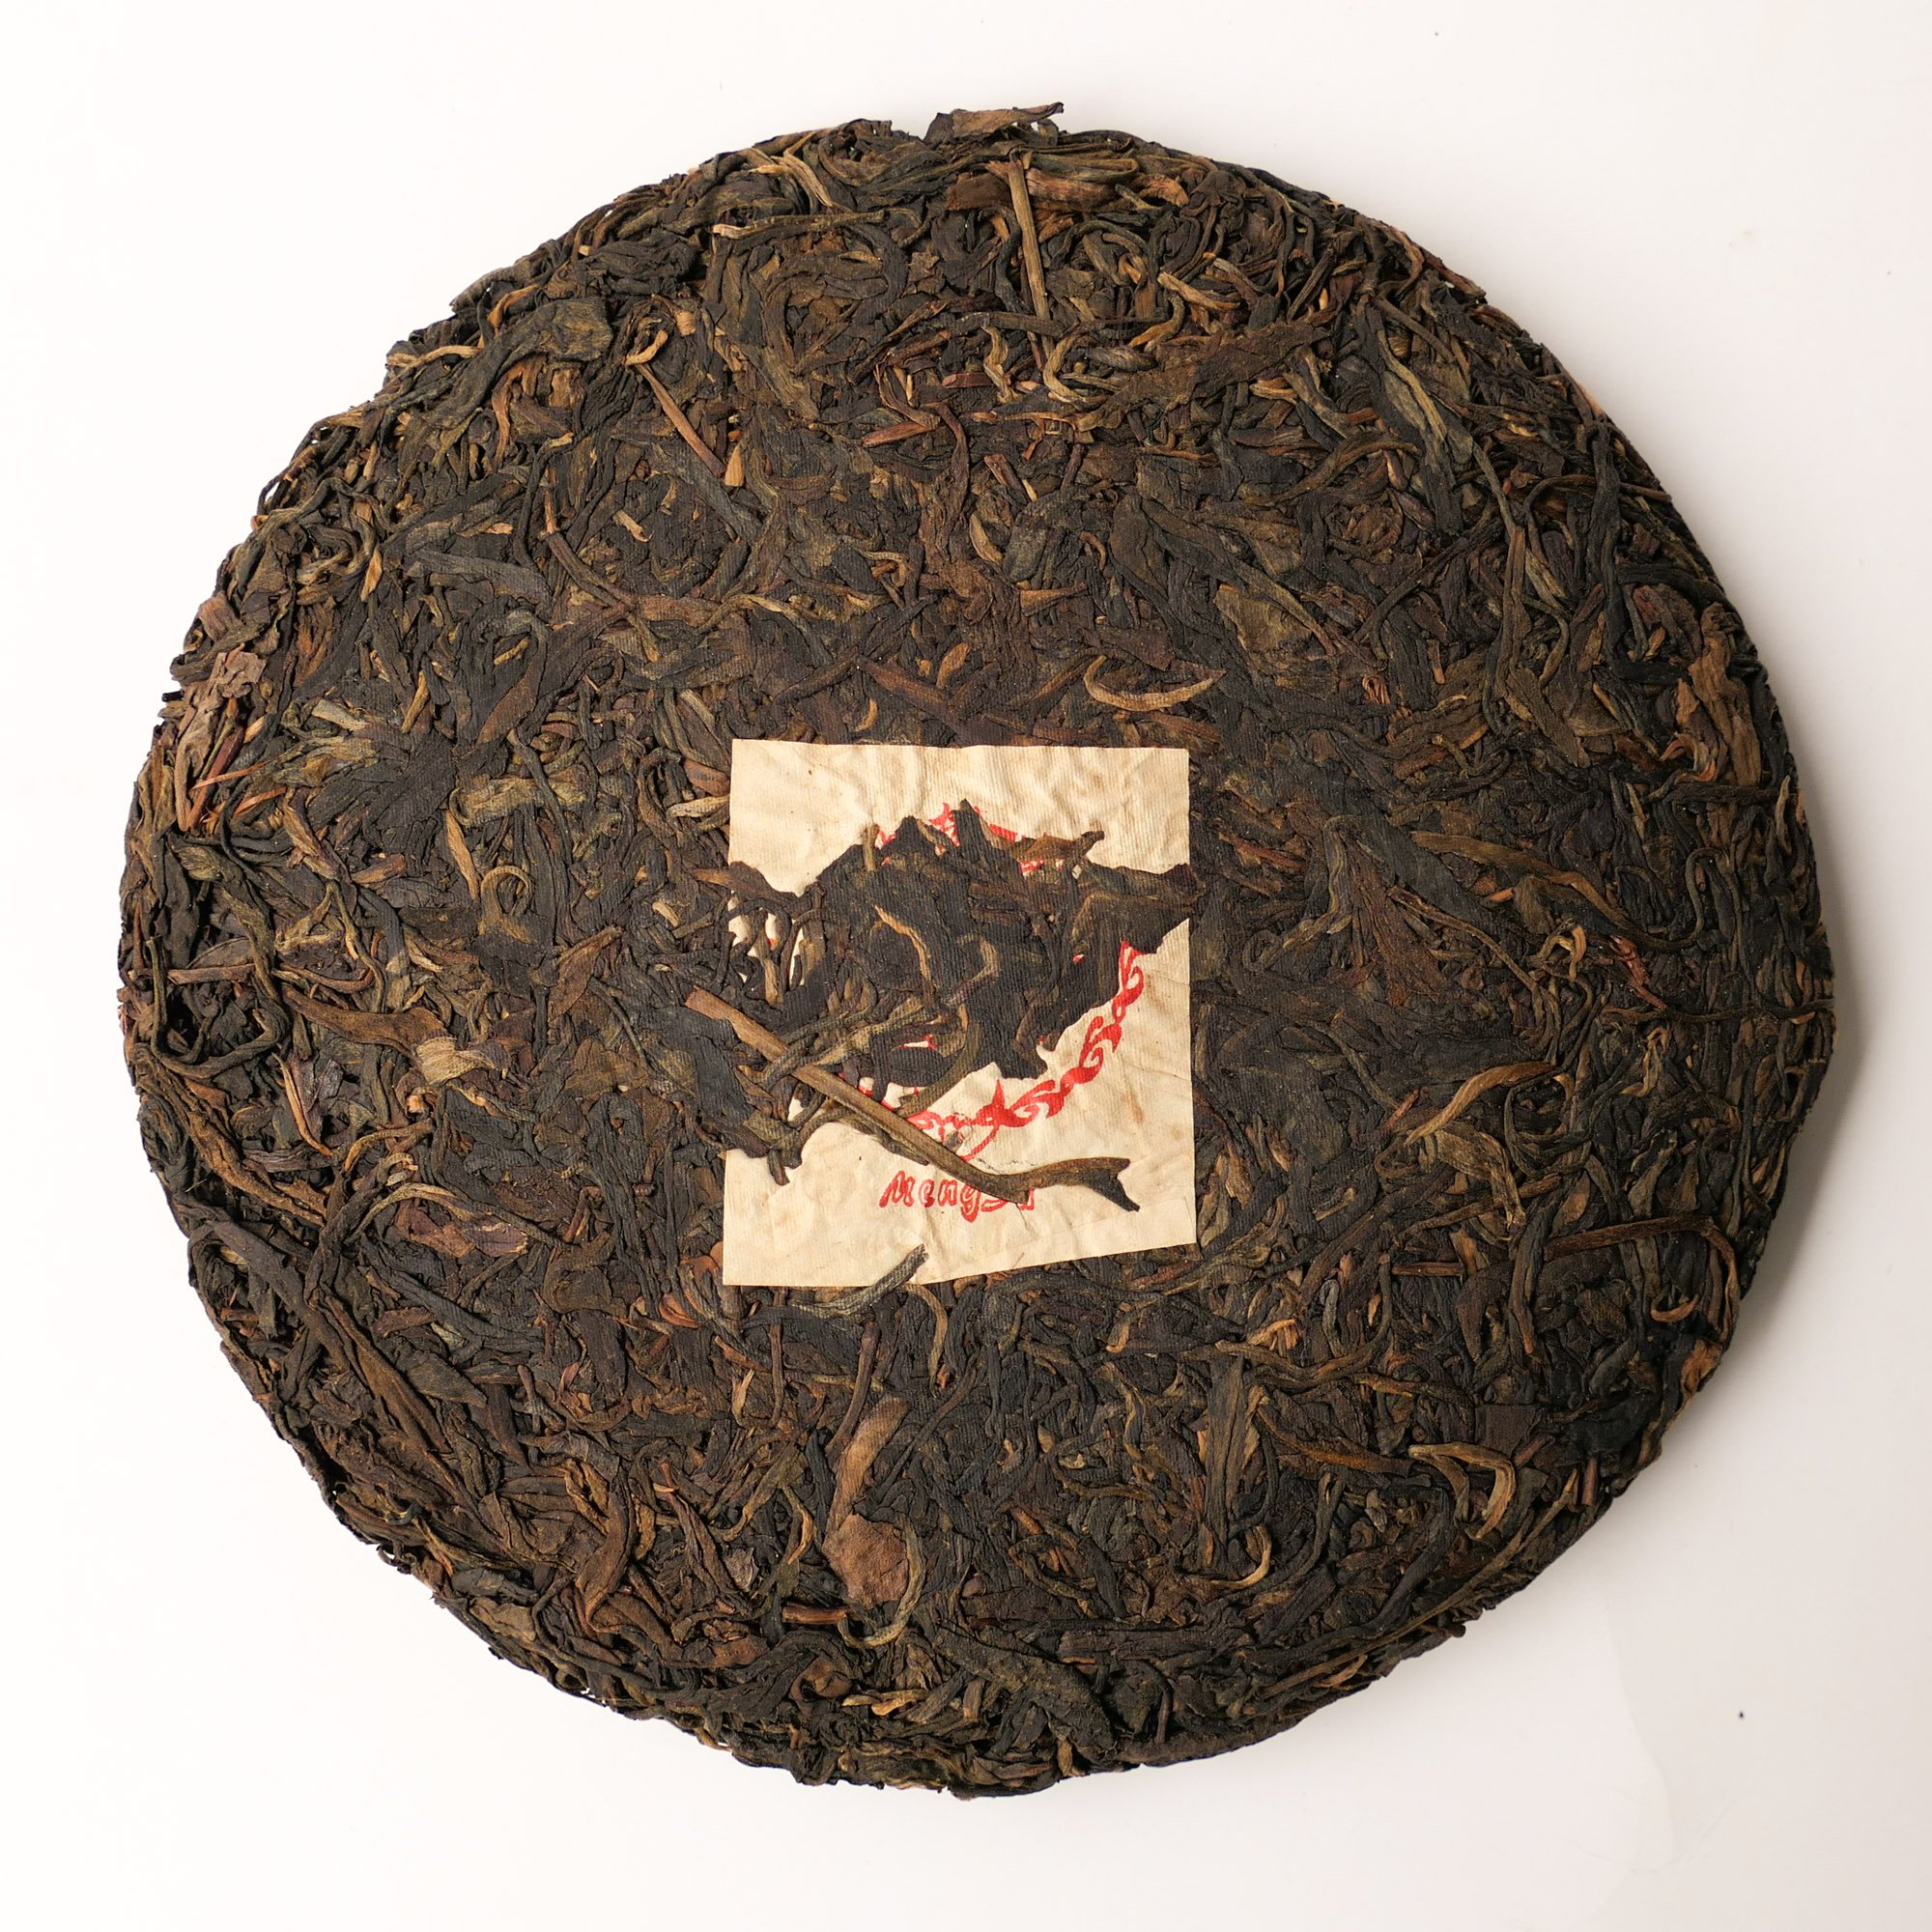 Coming Home (Old tree) – 2001 Sheng Puerh